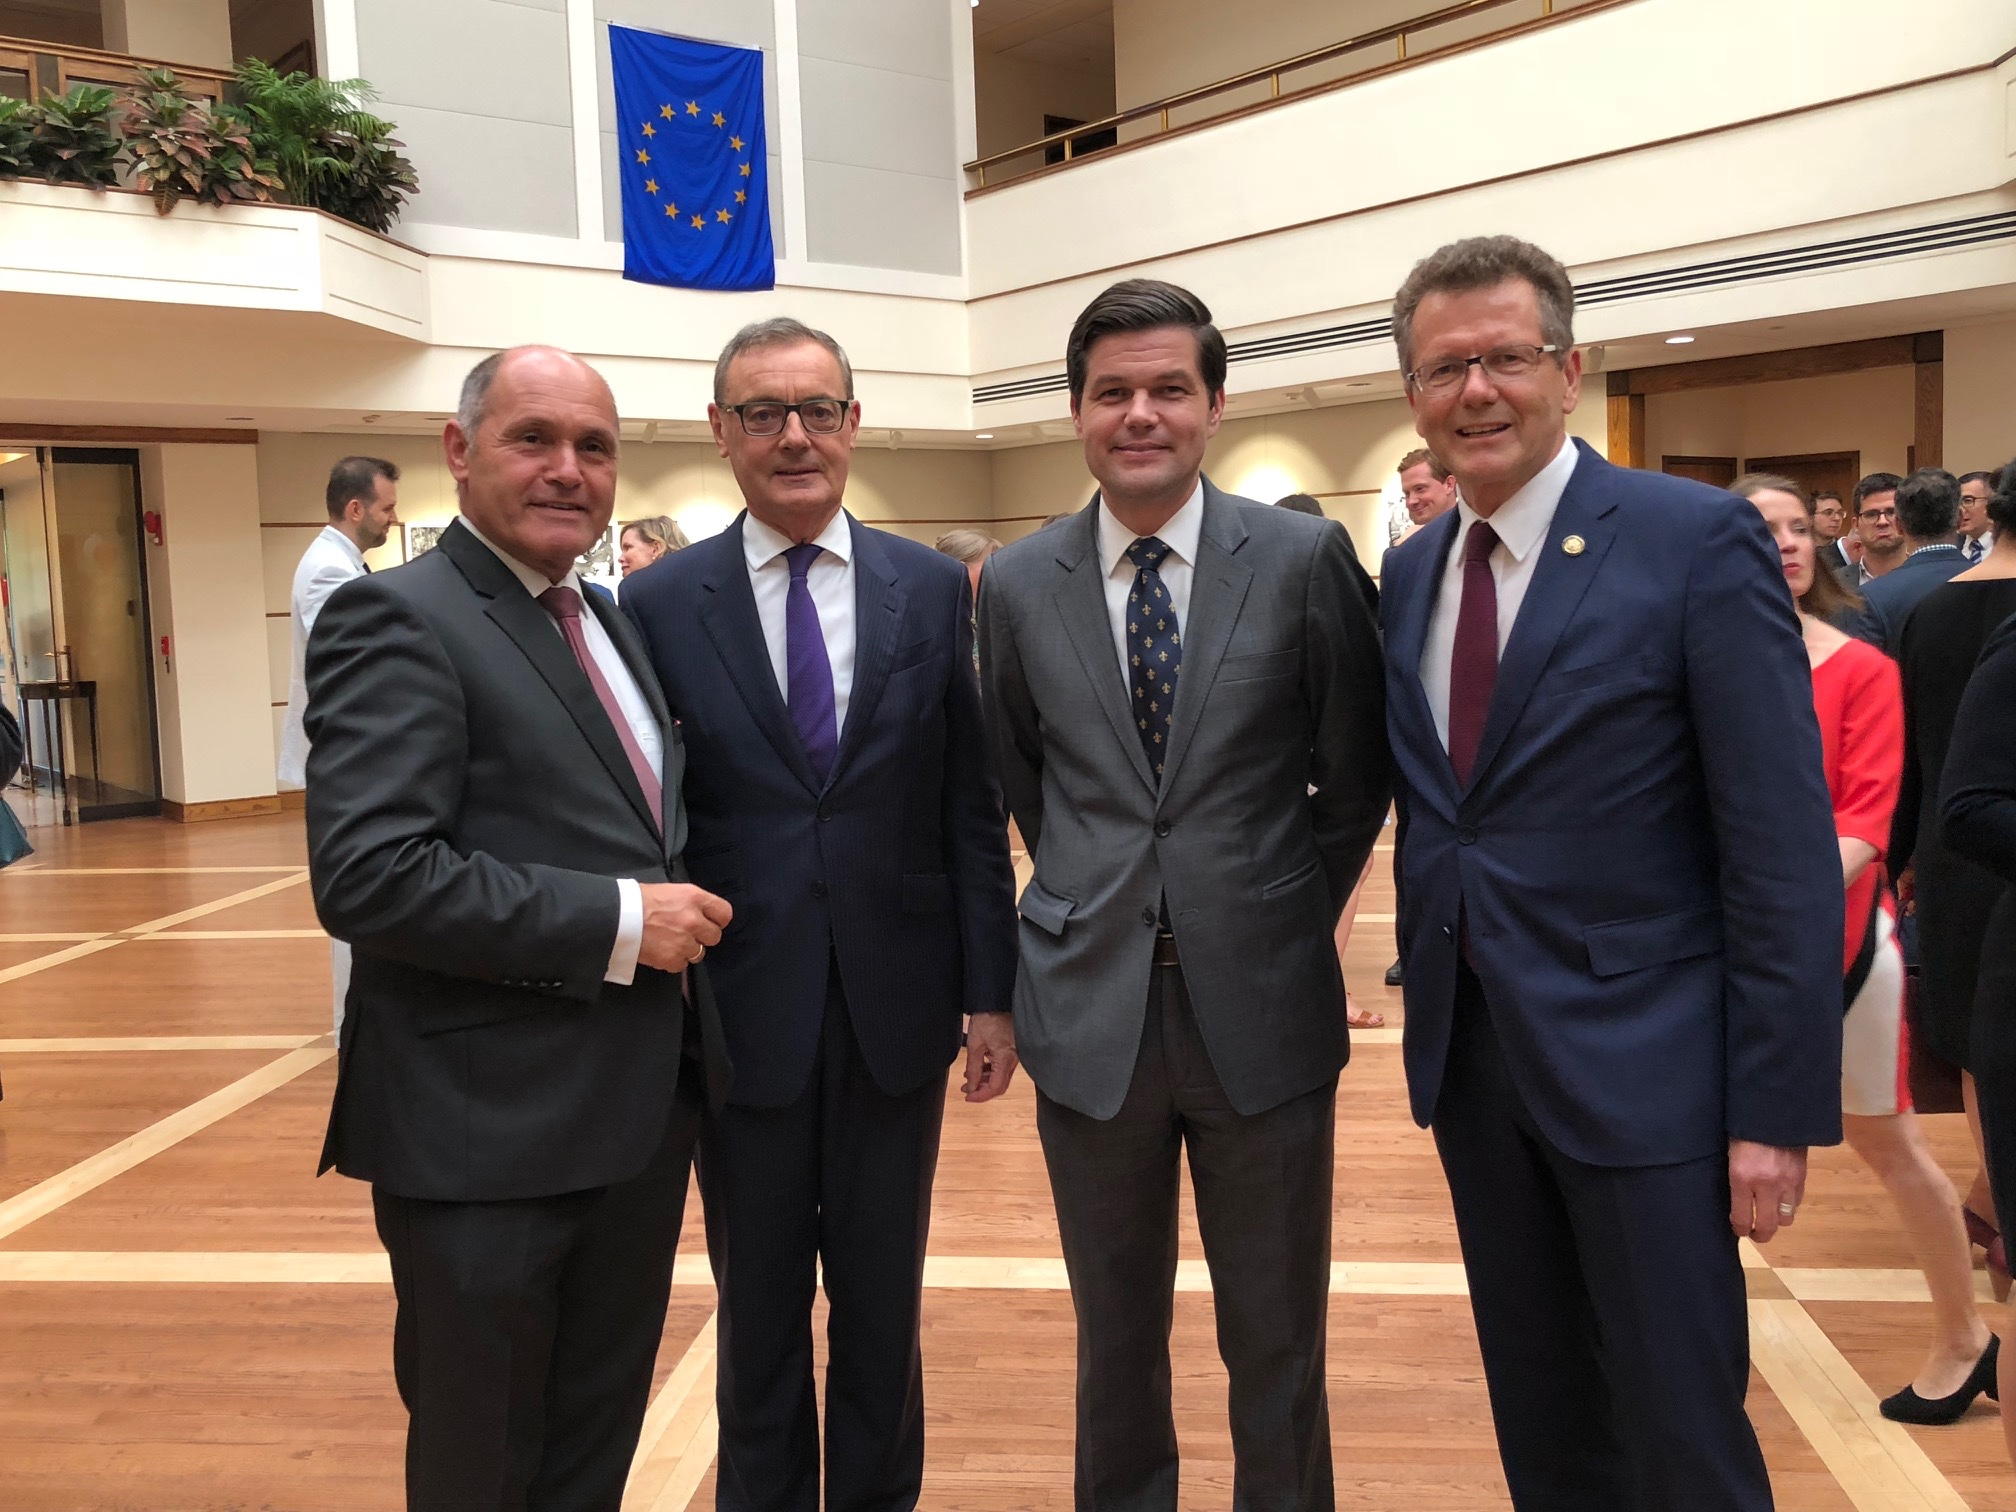 from left: Wolfgang Sobotka (First President of the Austrian National Council), Ambassador David O'Sullivan (Delegation of the European Union to the U.S.), A. Wess Mitchell (U.S. Assistant Secretary of State), Ambassador Wolfgang Waldner